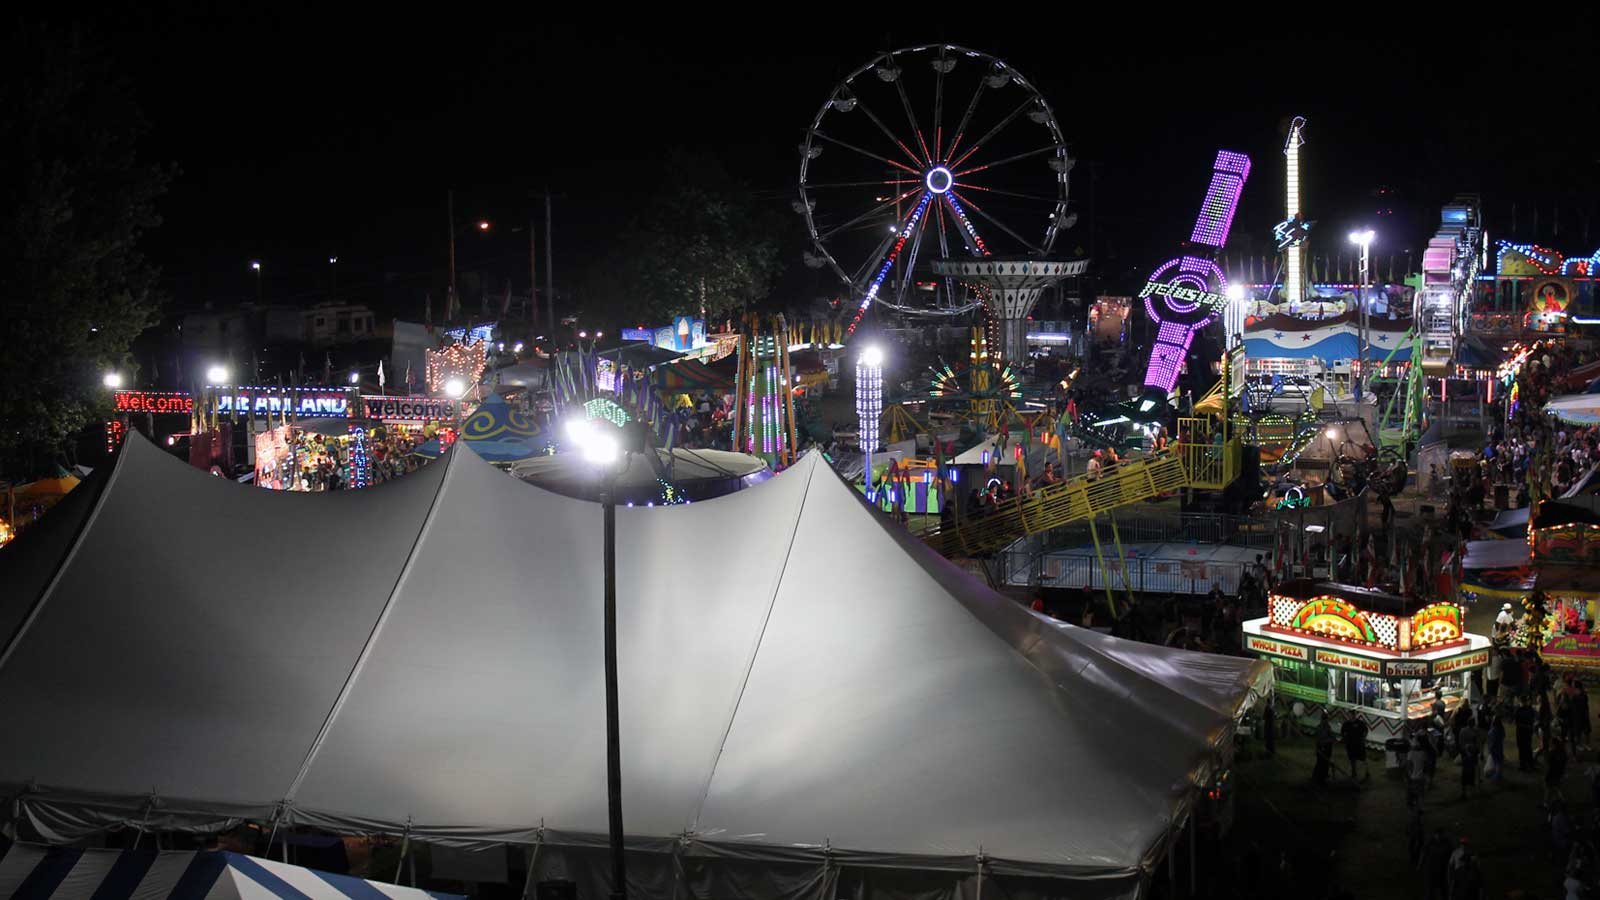 Ulster County Fair at the Ulster County Fairgrounds